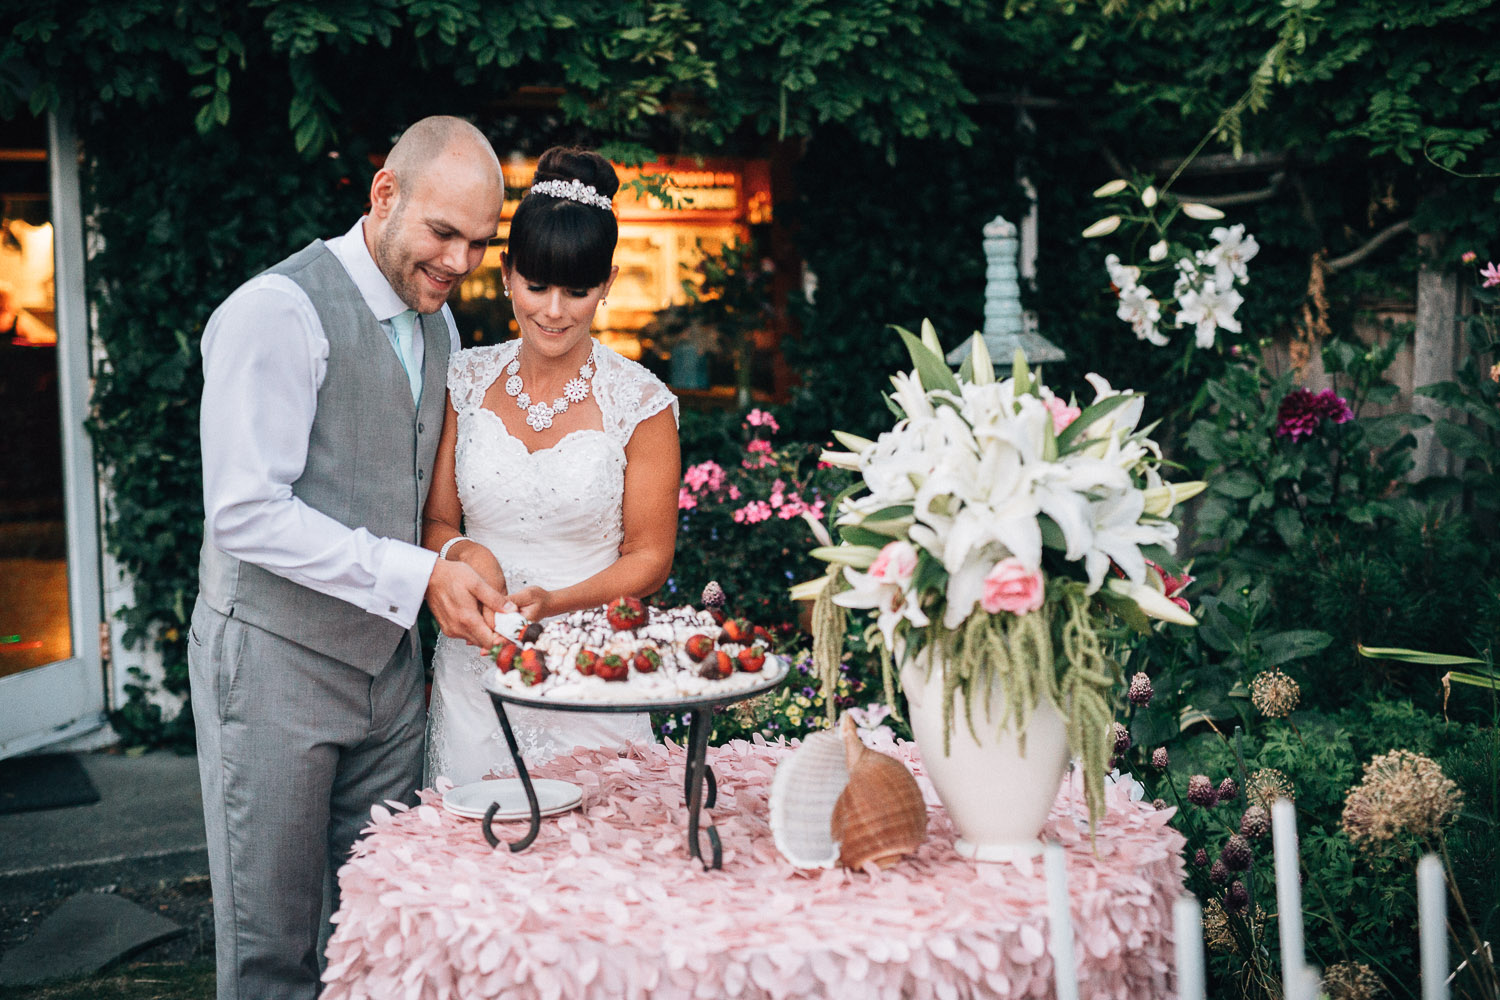 cake cutting south beach house point roberts wedding destination vancouver based